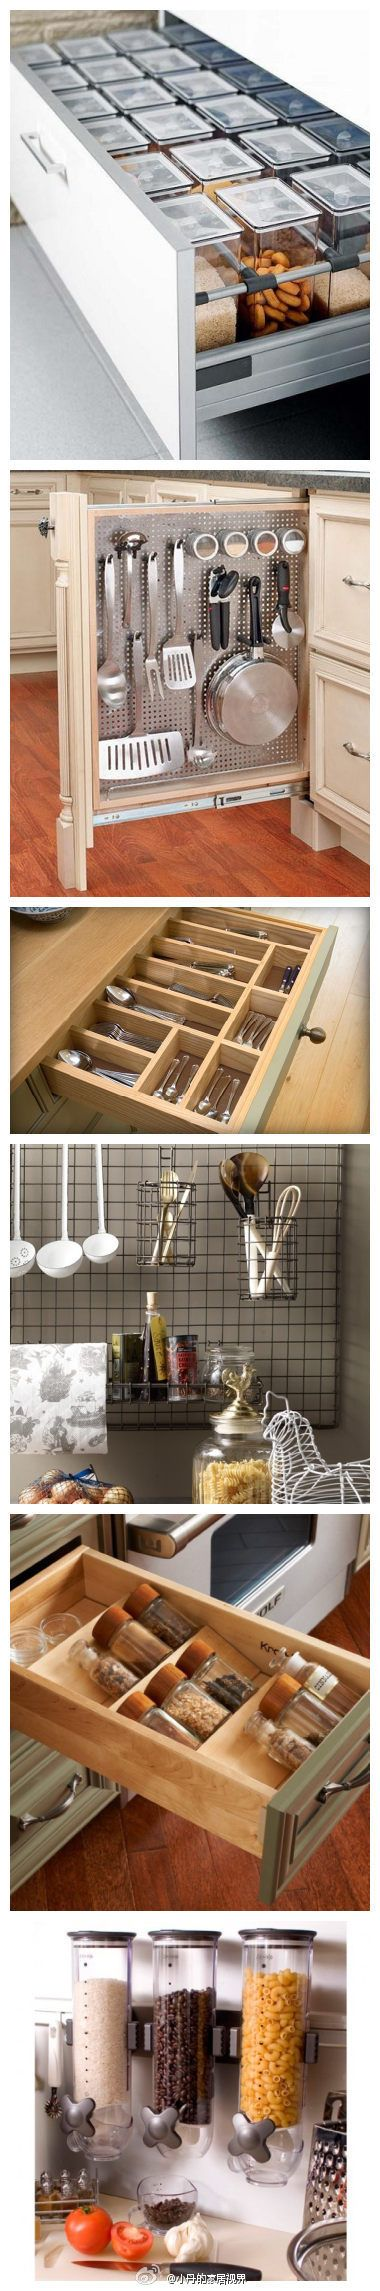 kitchen organization - use extra drawers for food storage containers (photo)